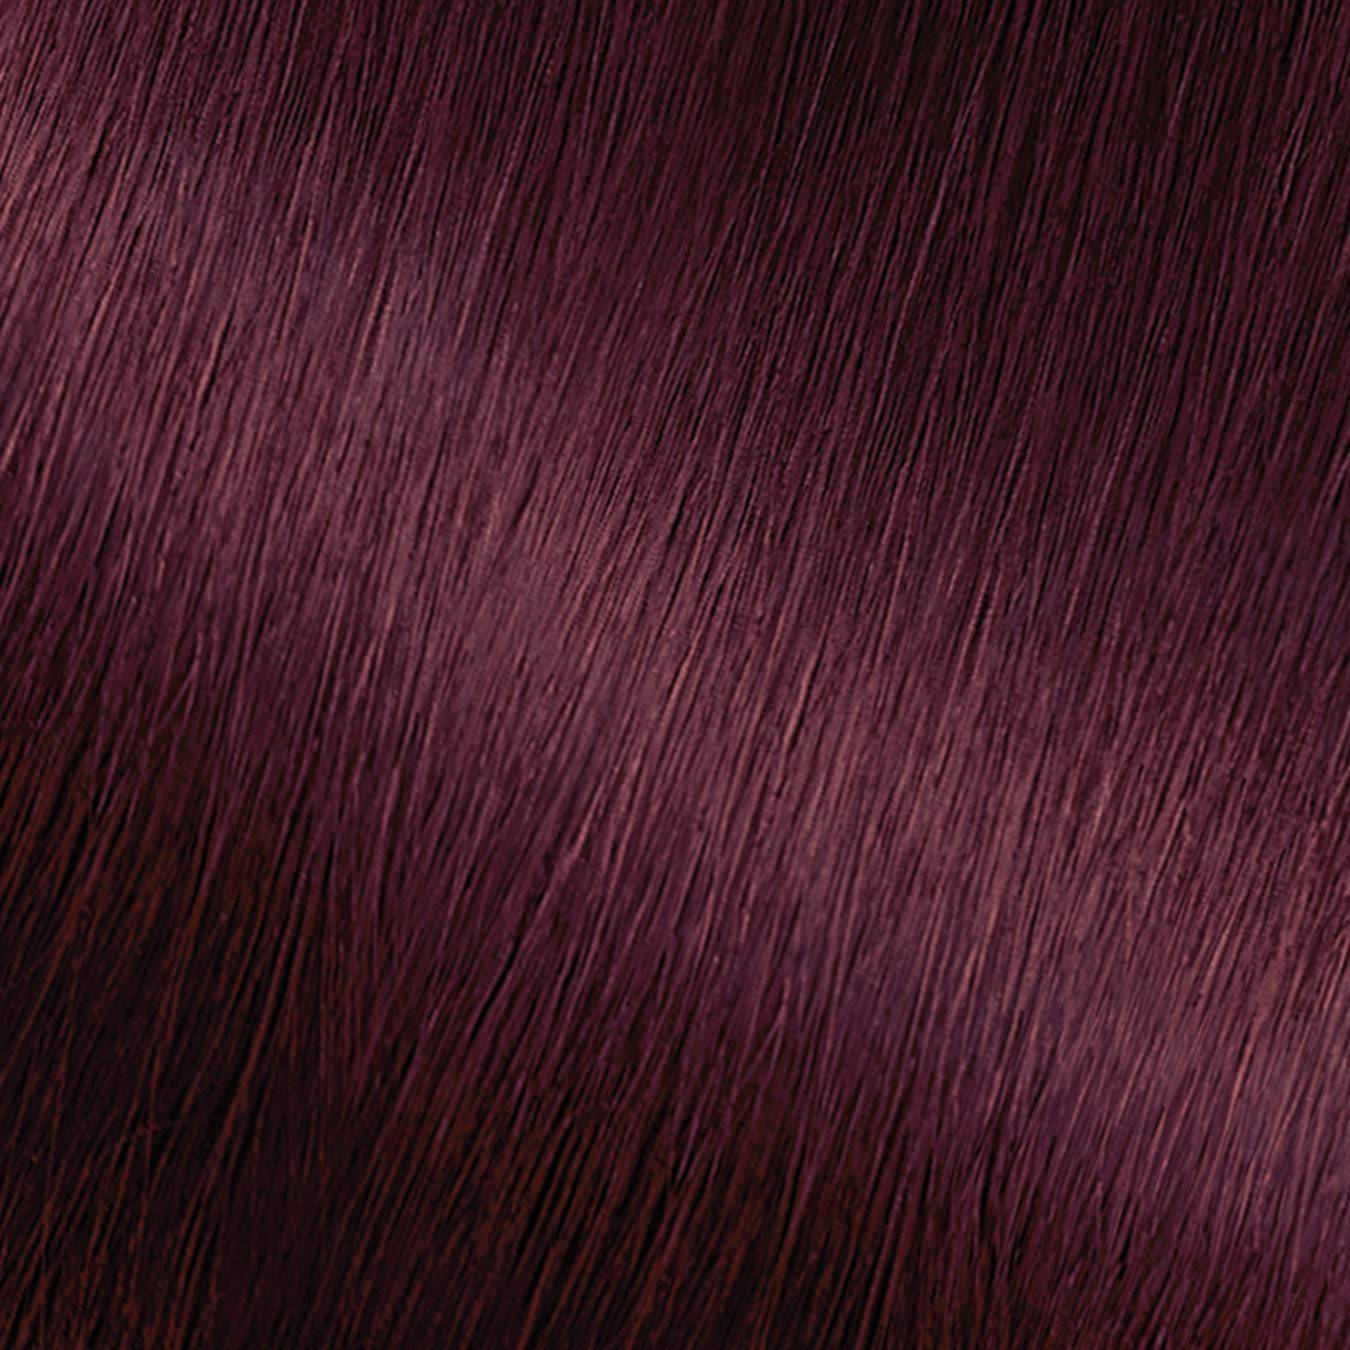 Hair Swatch of Nutrisse Ultra Coverage 420 Cabernet.